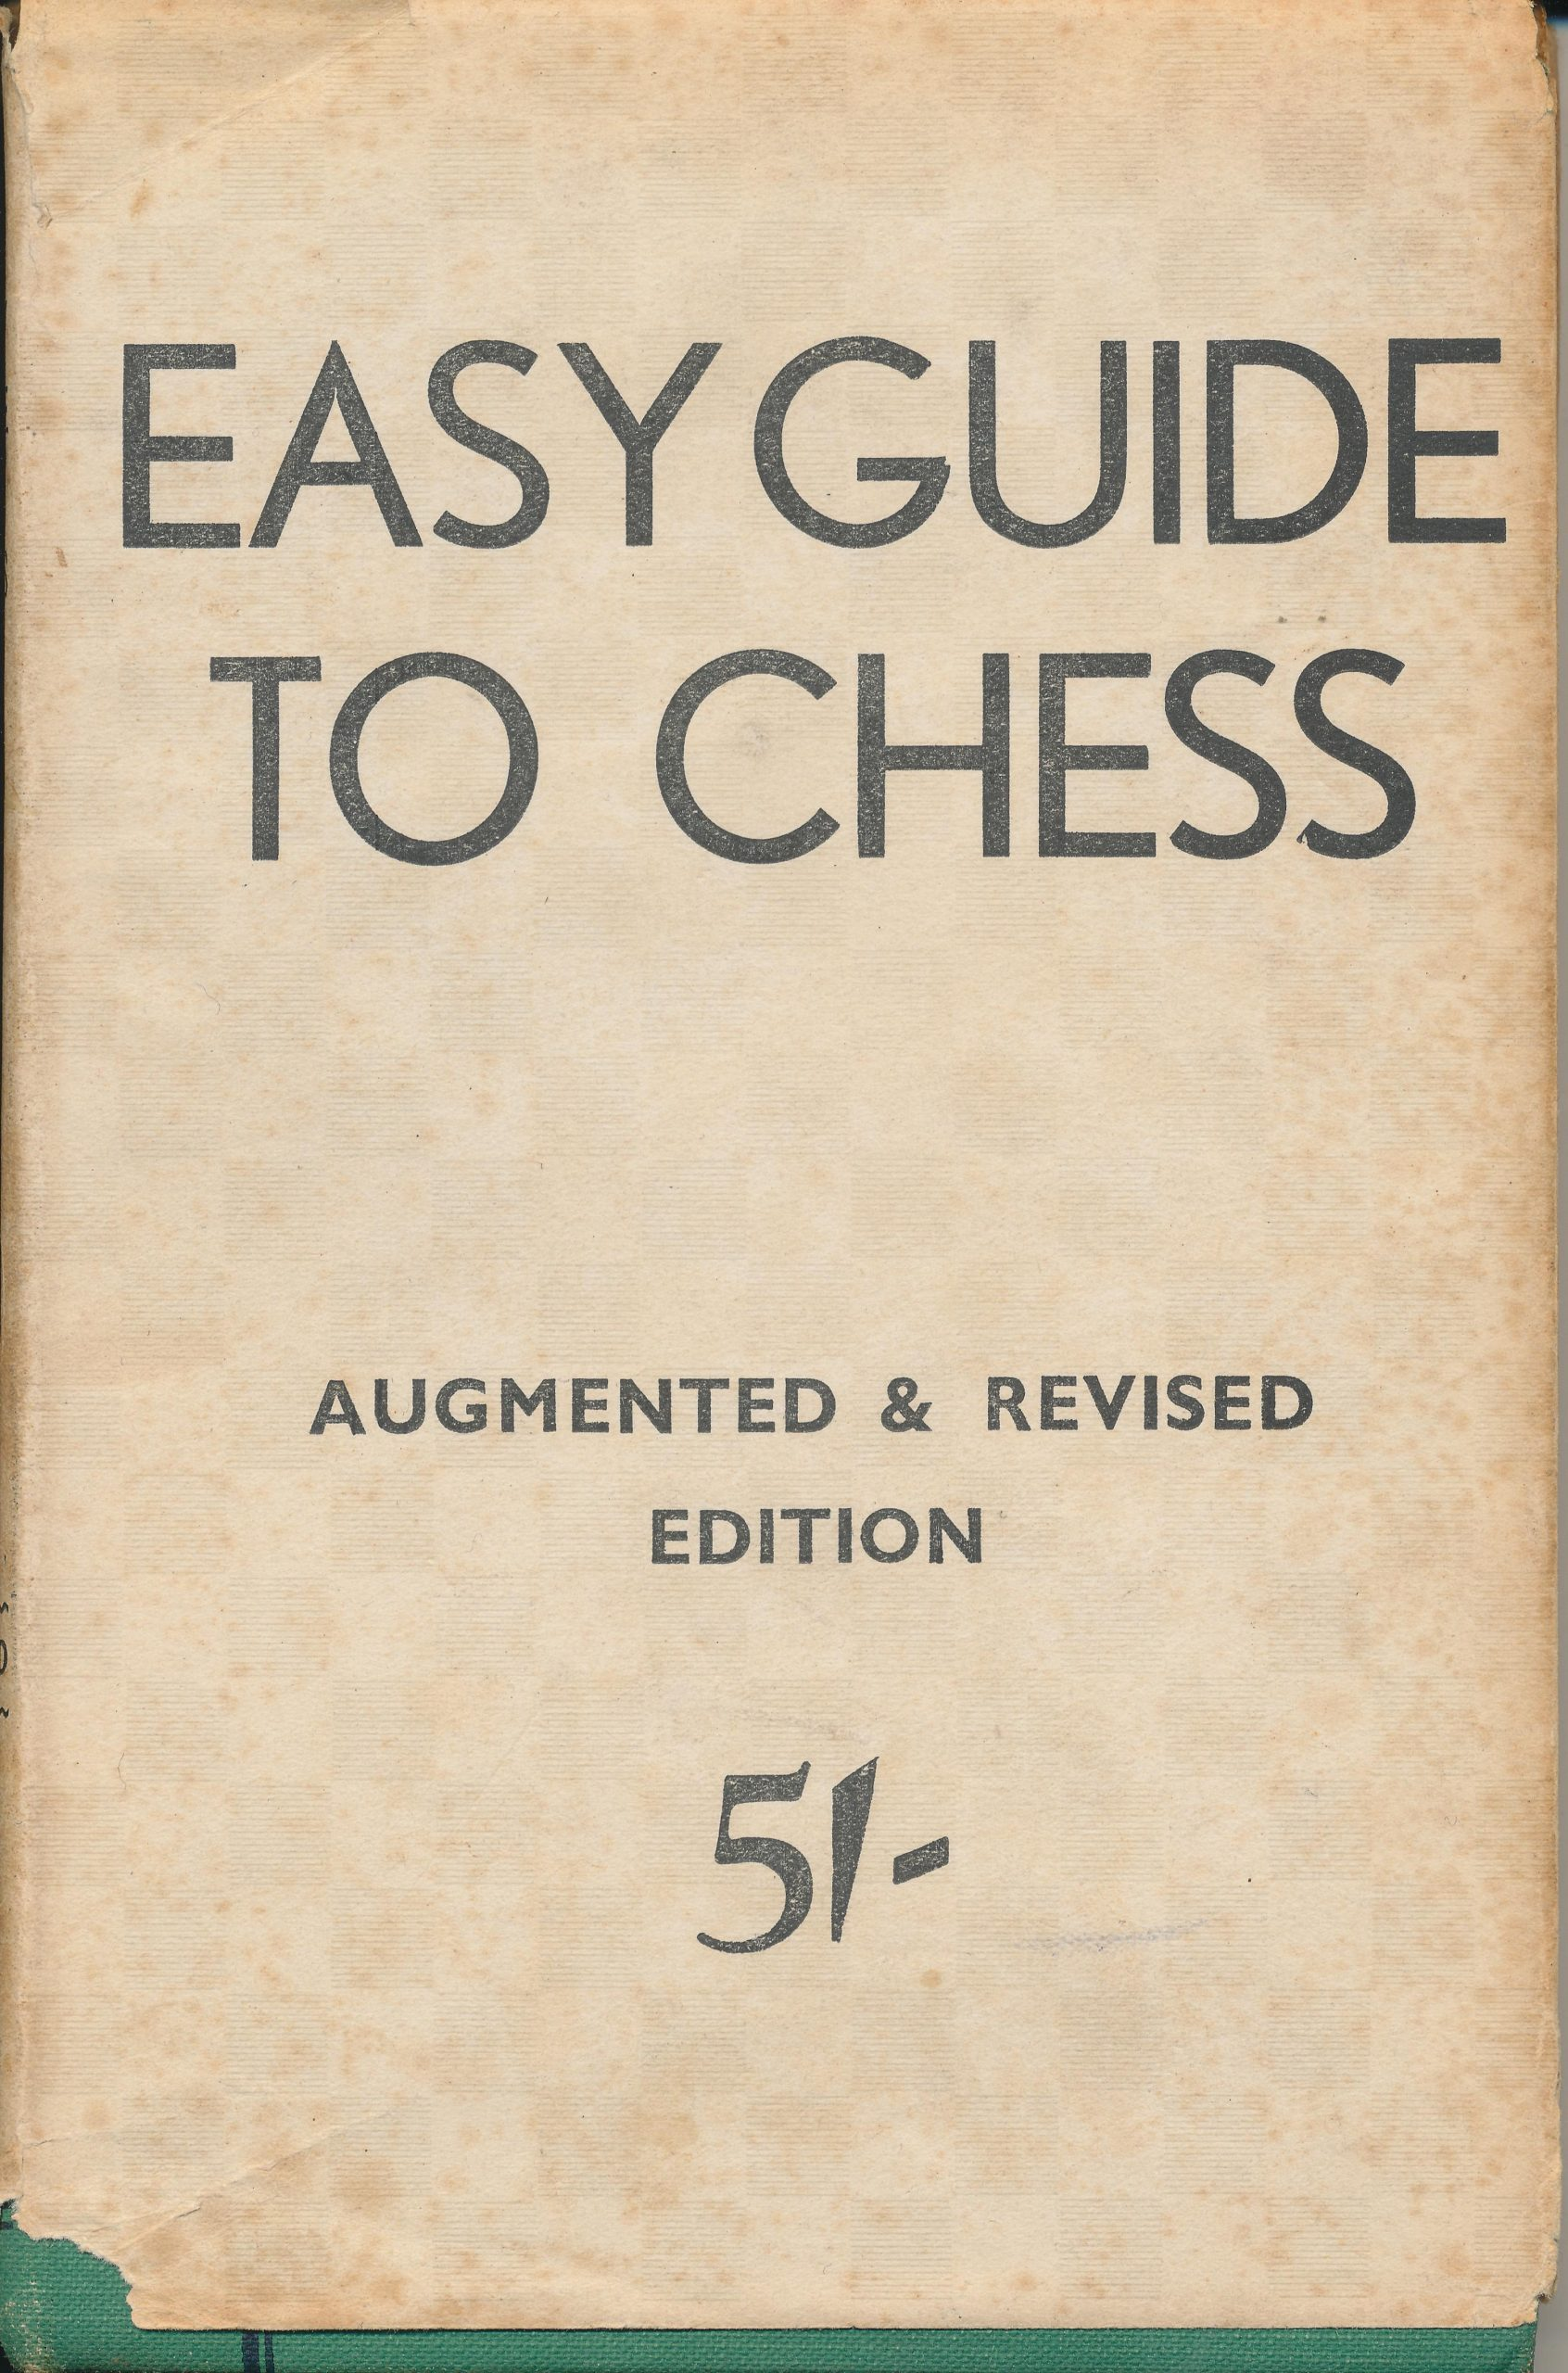 Easy Guide to Chess, BH Wood, CHESS, Sutton Coldfield, 1945